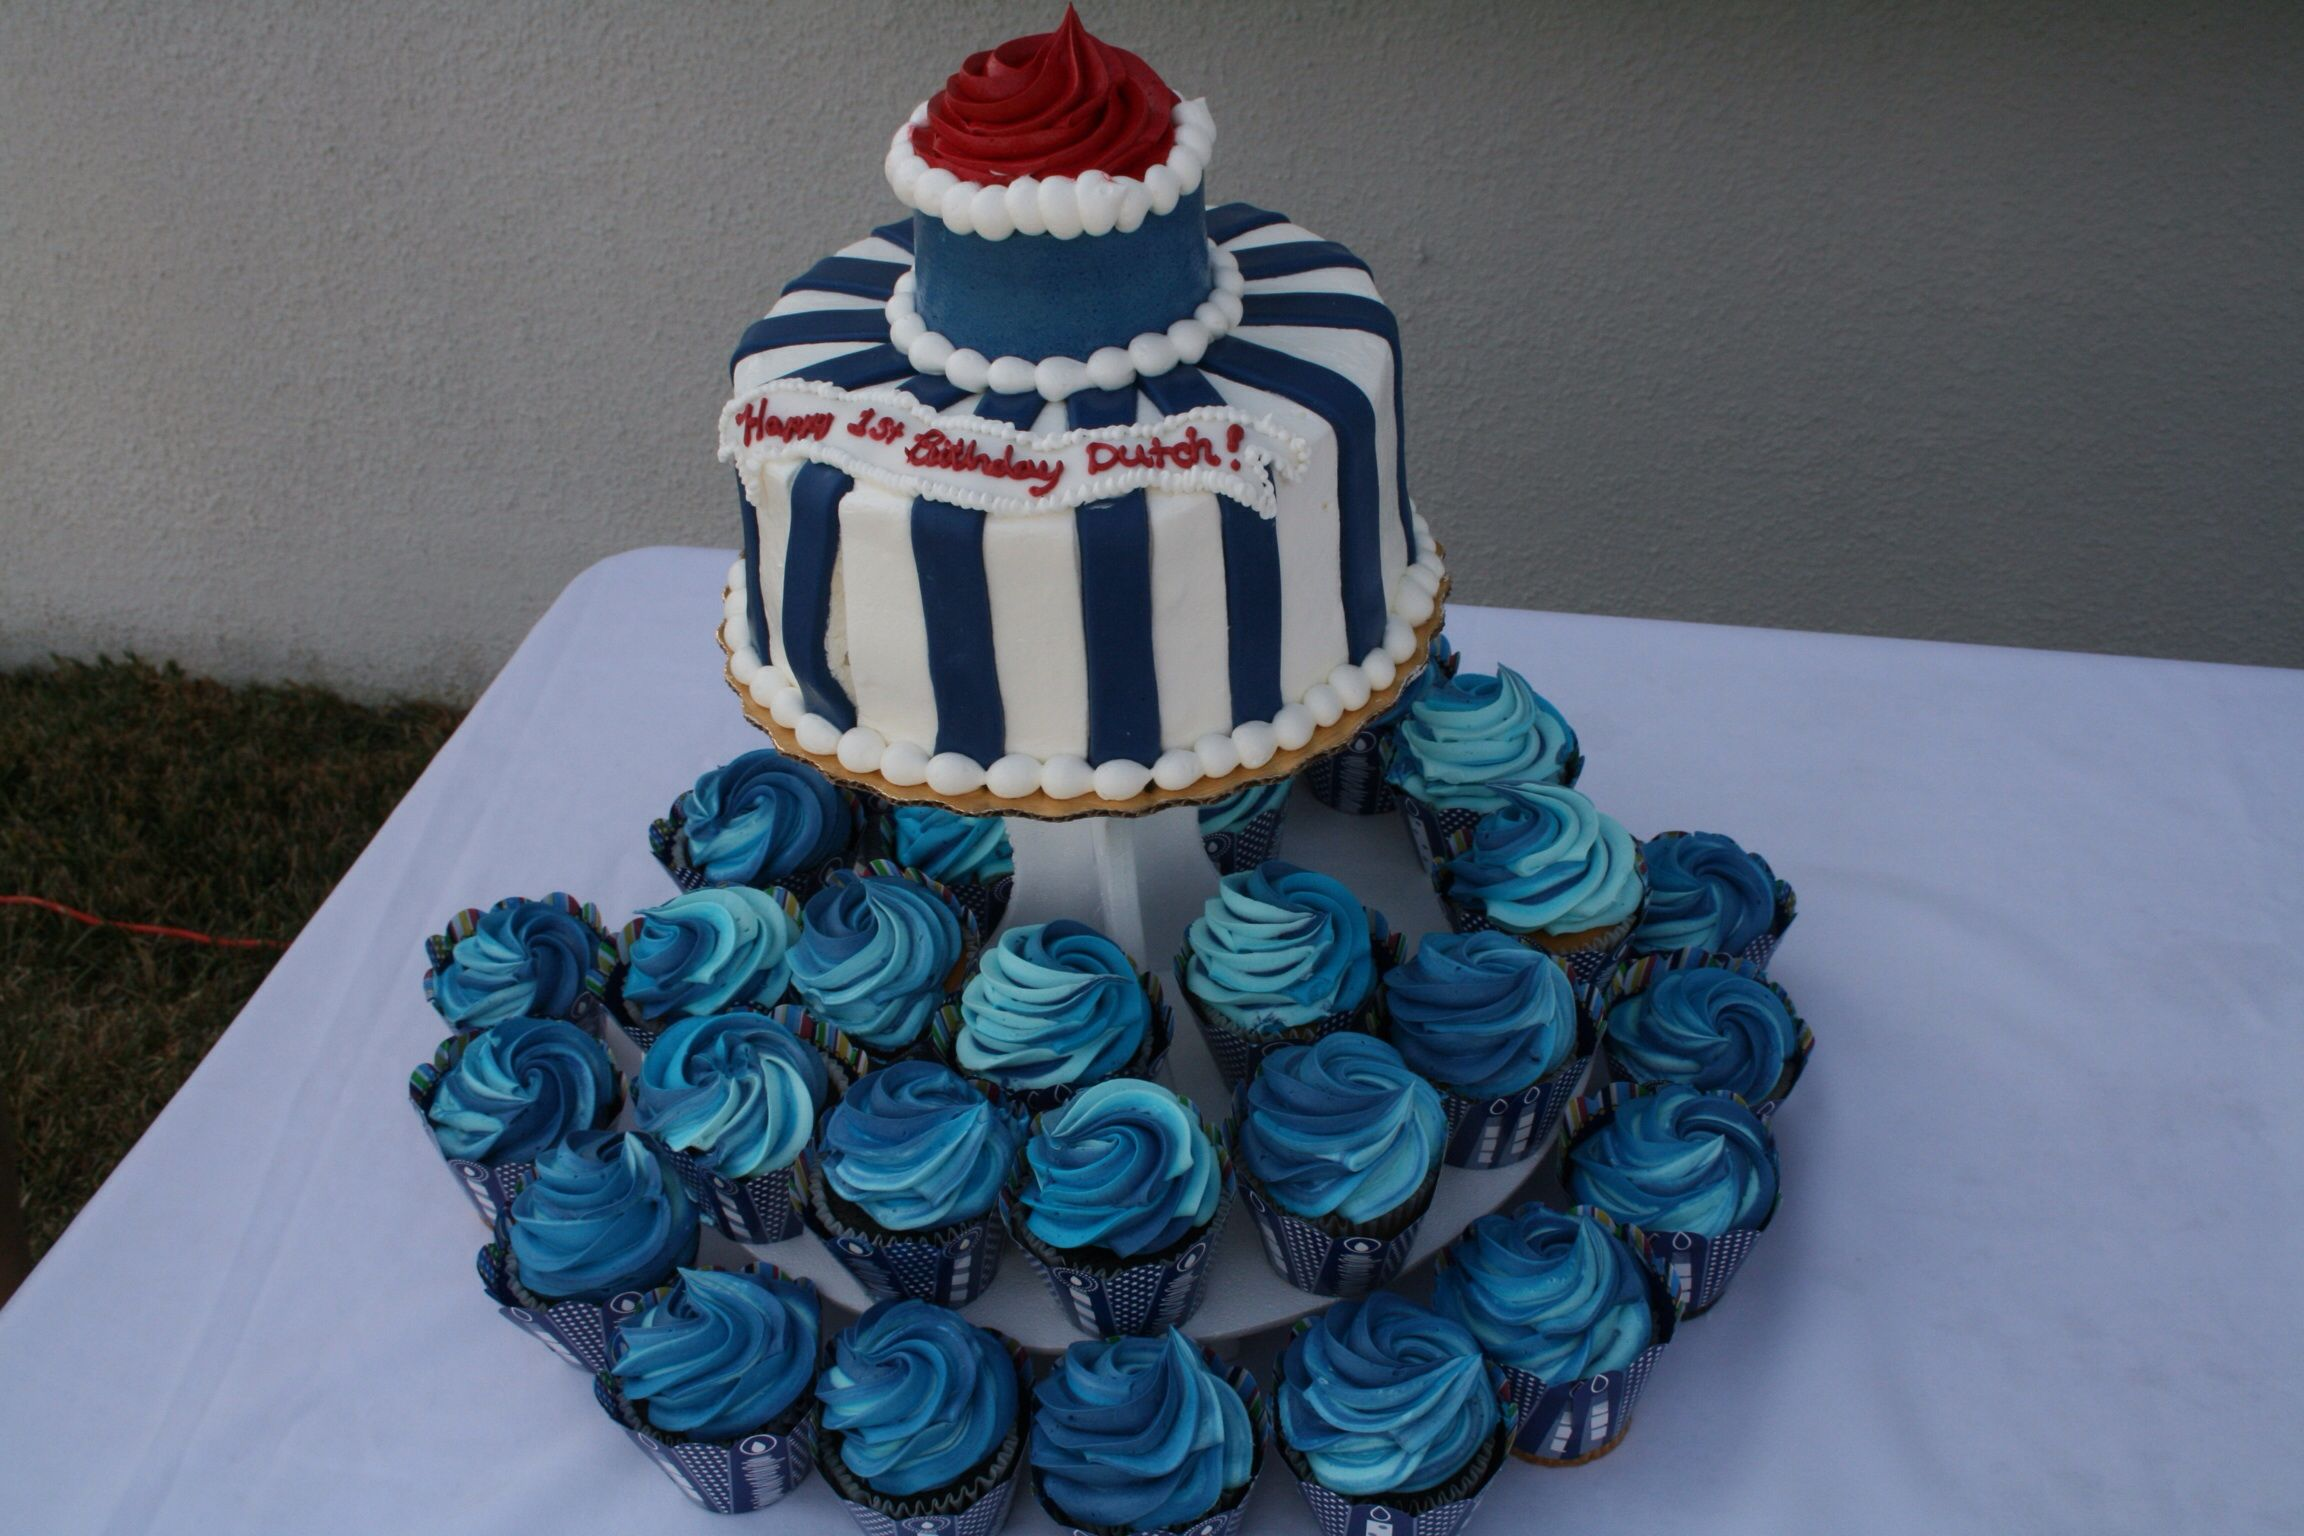 Cruise theme cake and cupcakes from publix with images